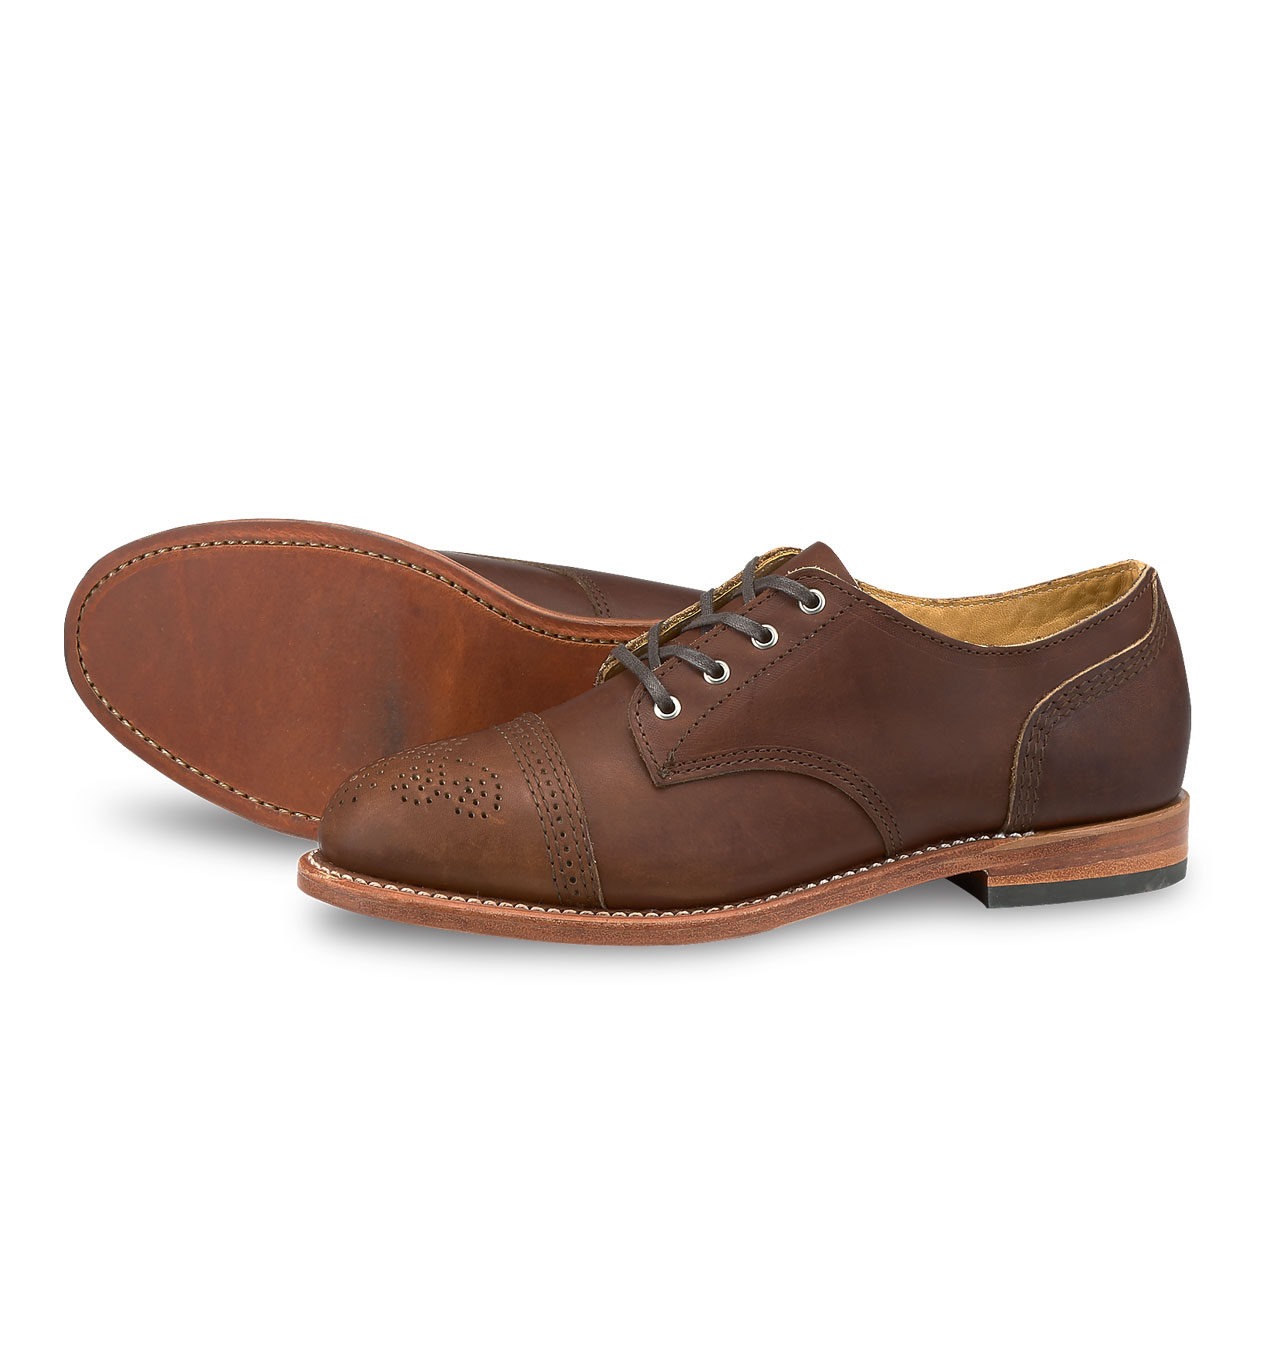 Red Wing Shoes Woman 3436 Hazel Oxfords - Amber Harness